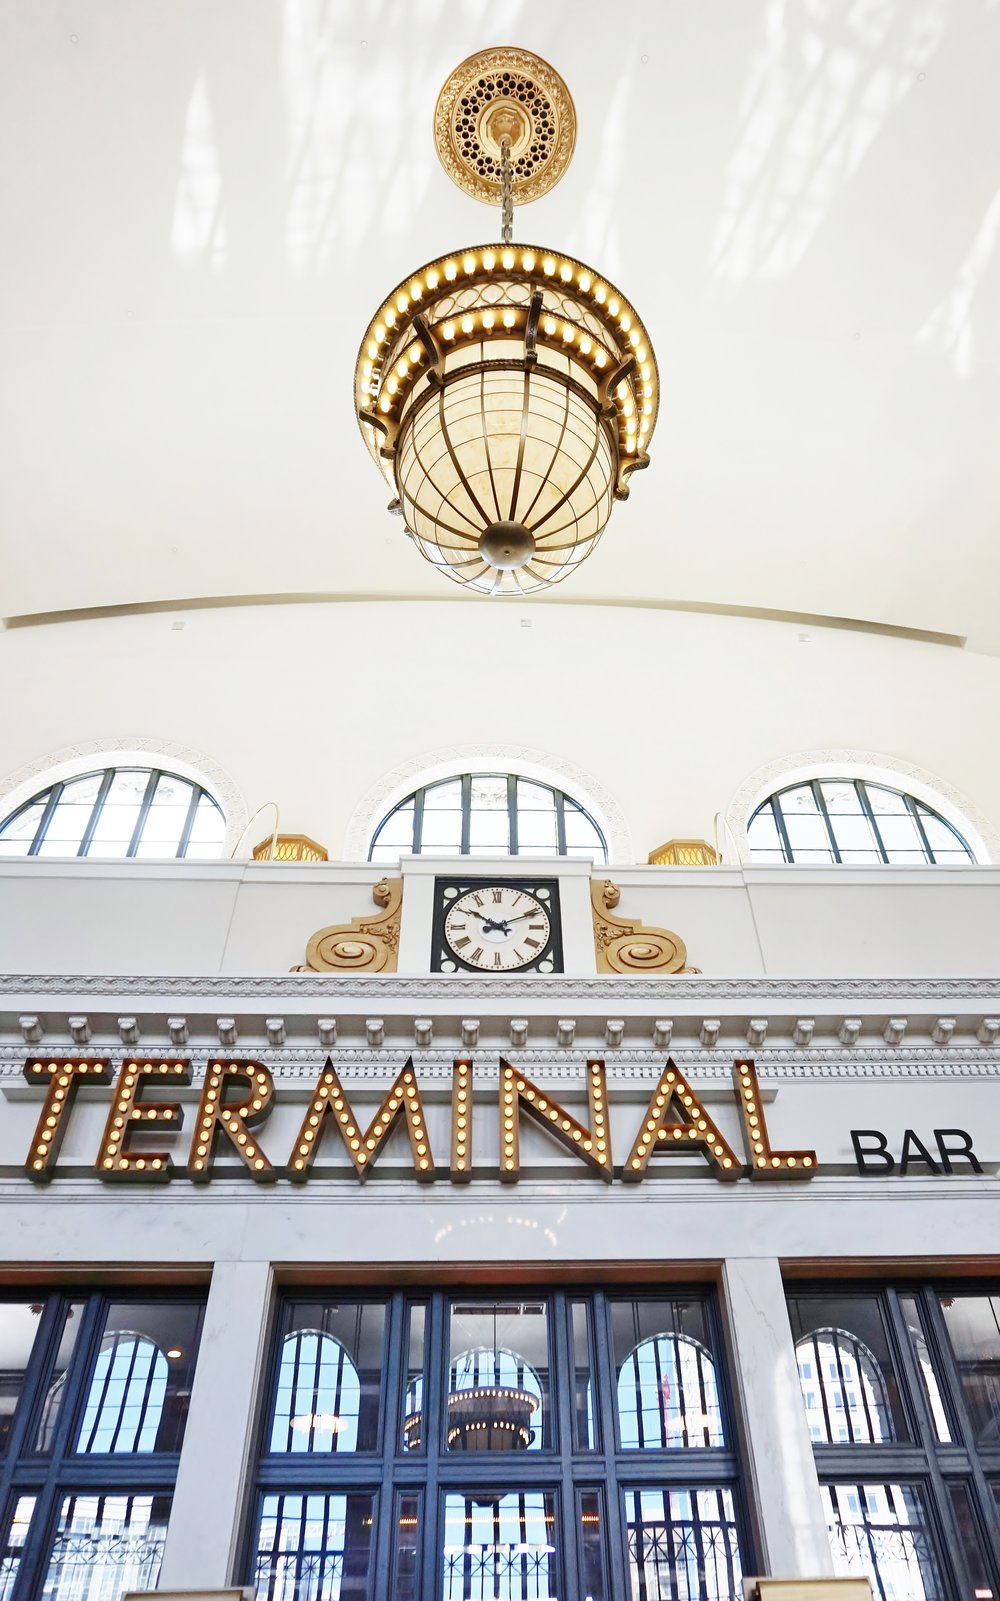 Architectural details and adaptive reuse at The Crawford Hotel at Union Station, Denver